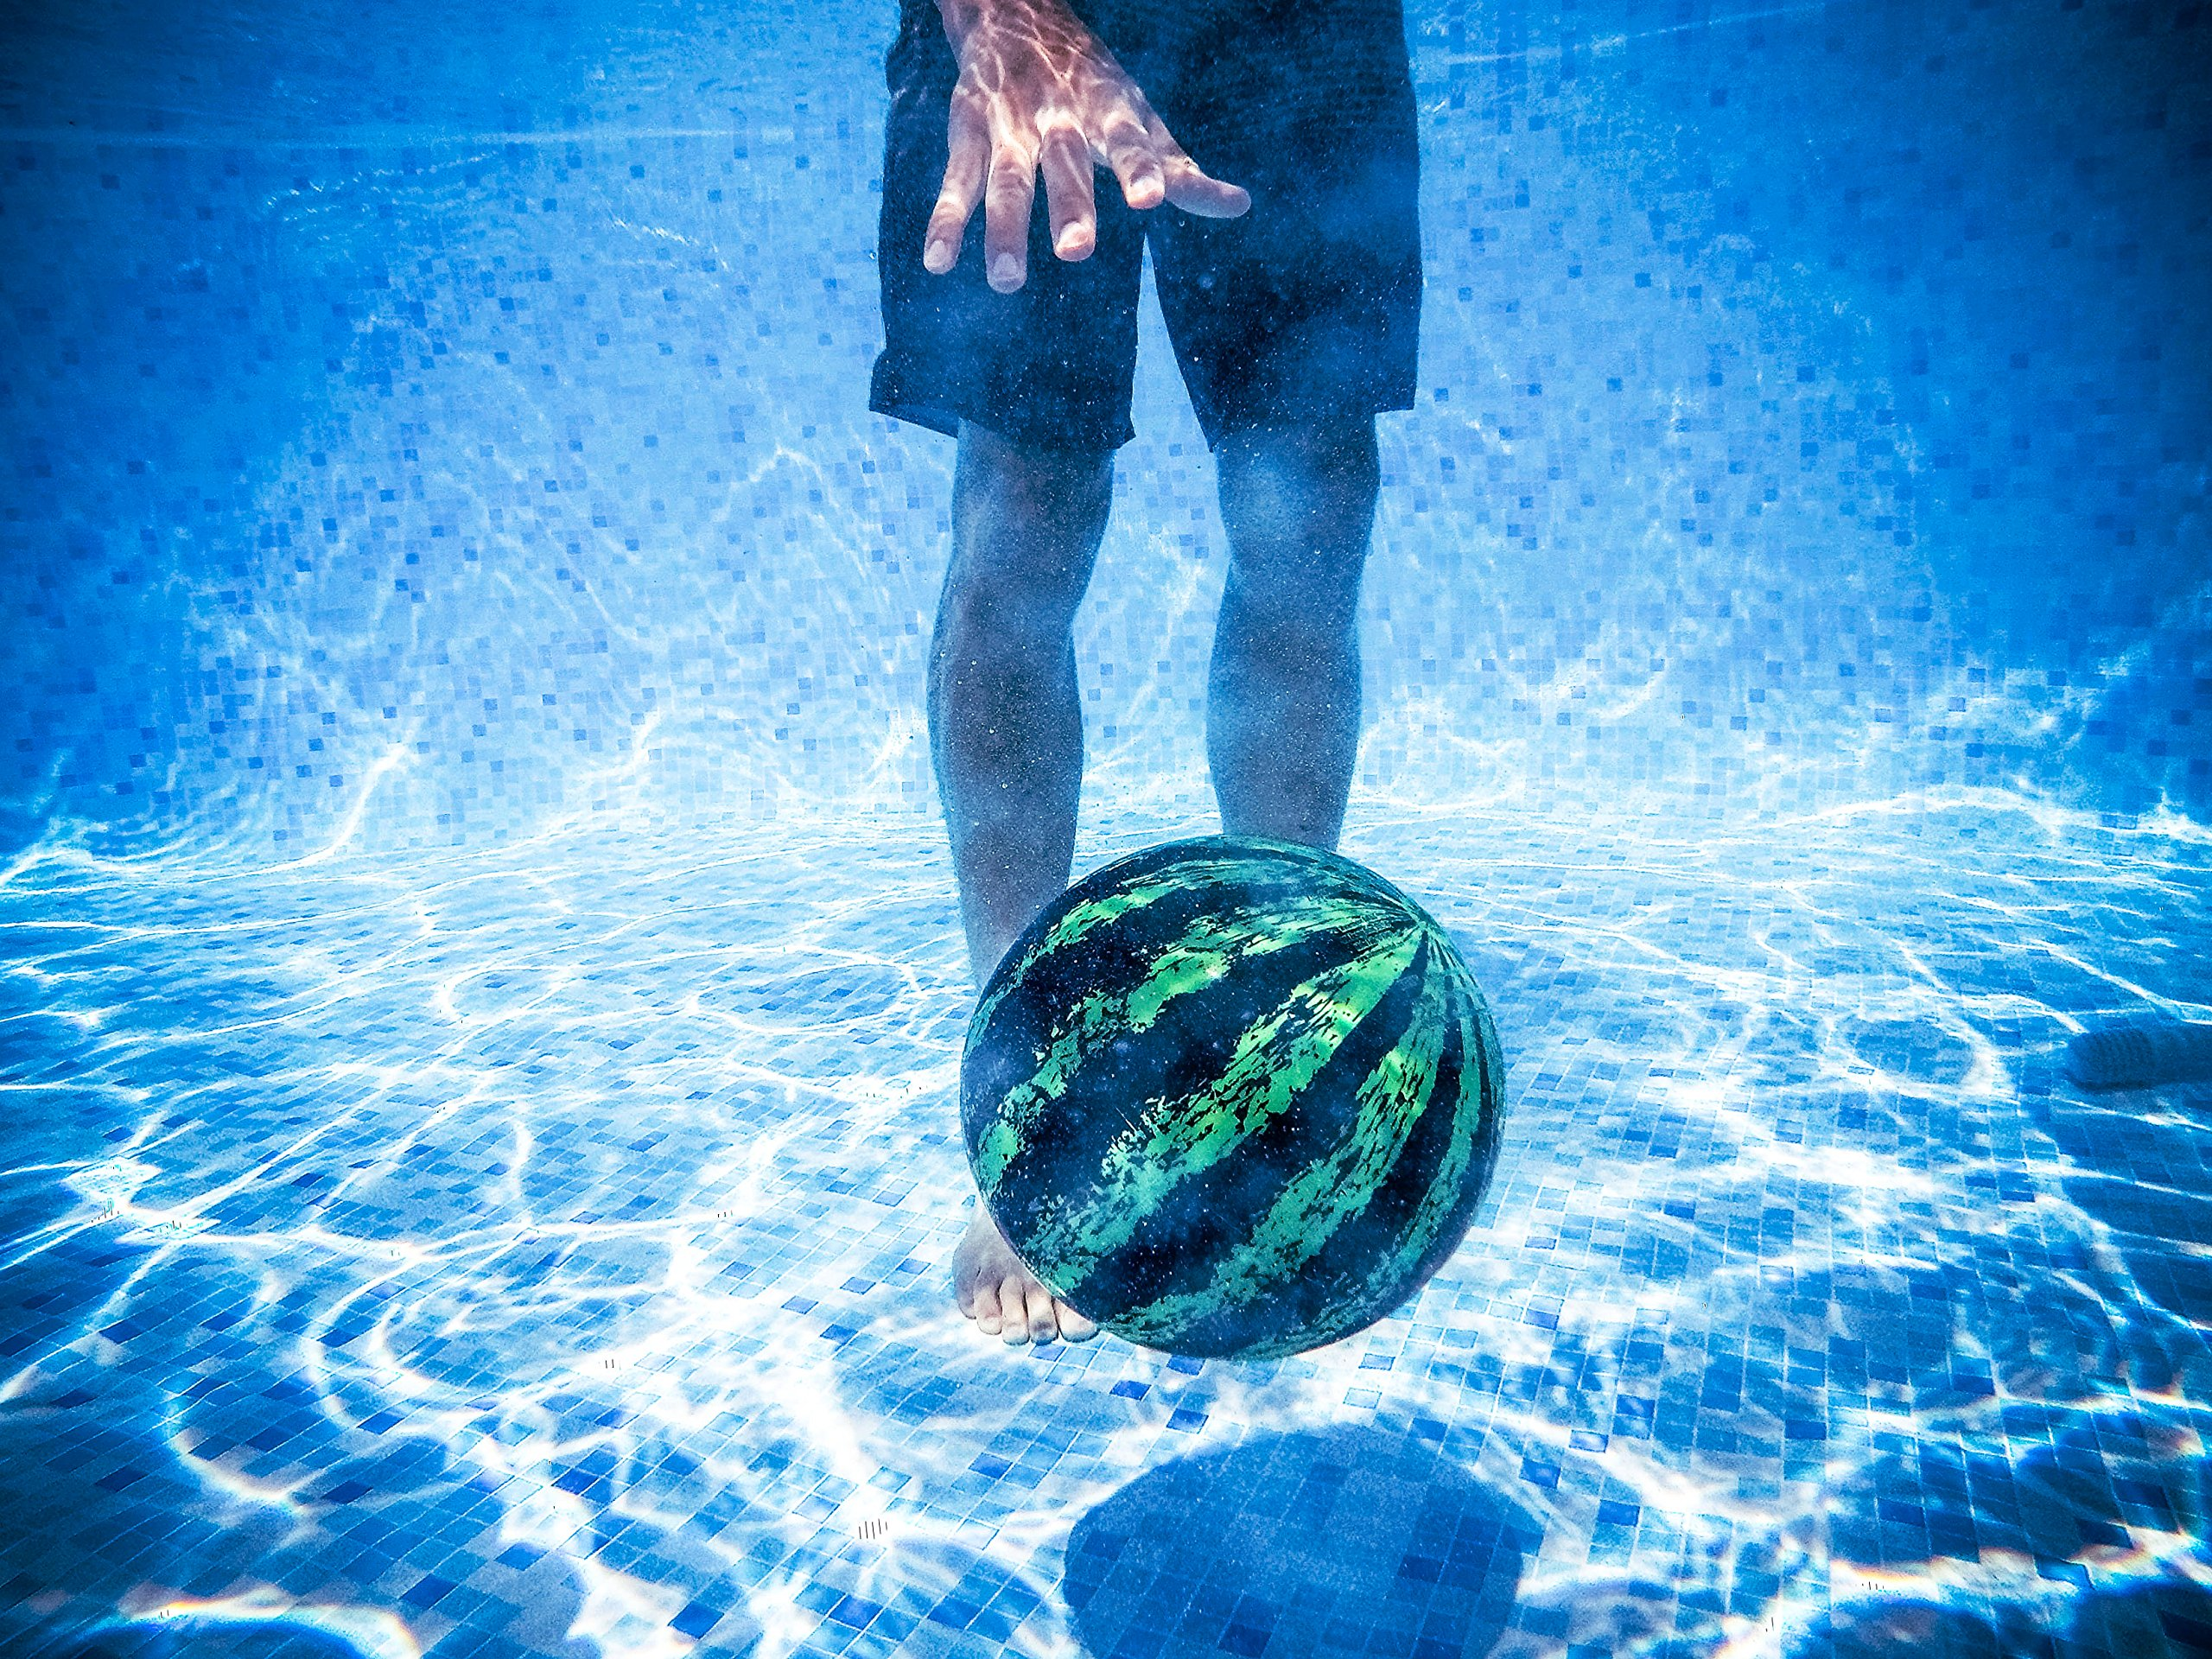 Watermelon ball the ultimate swimming pool game the ball - Watermelon ball swimming pool game ...